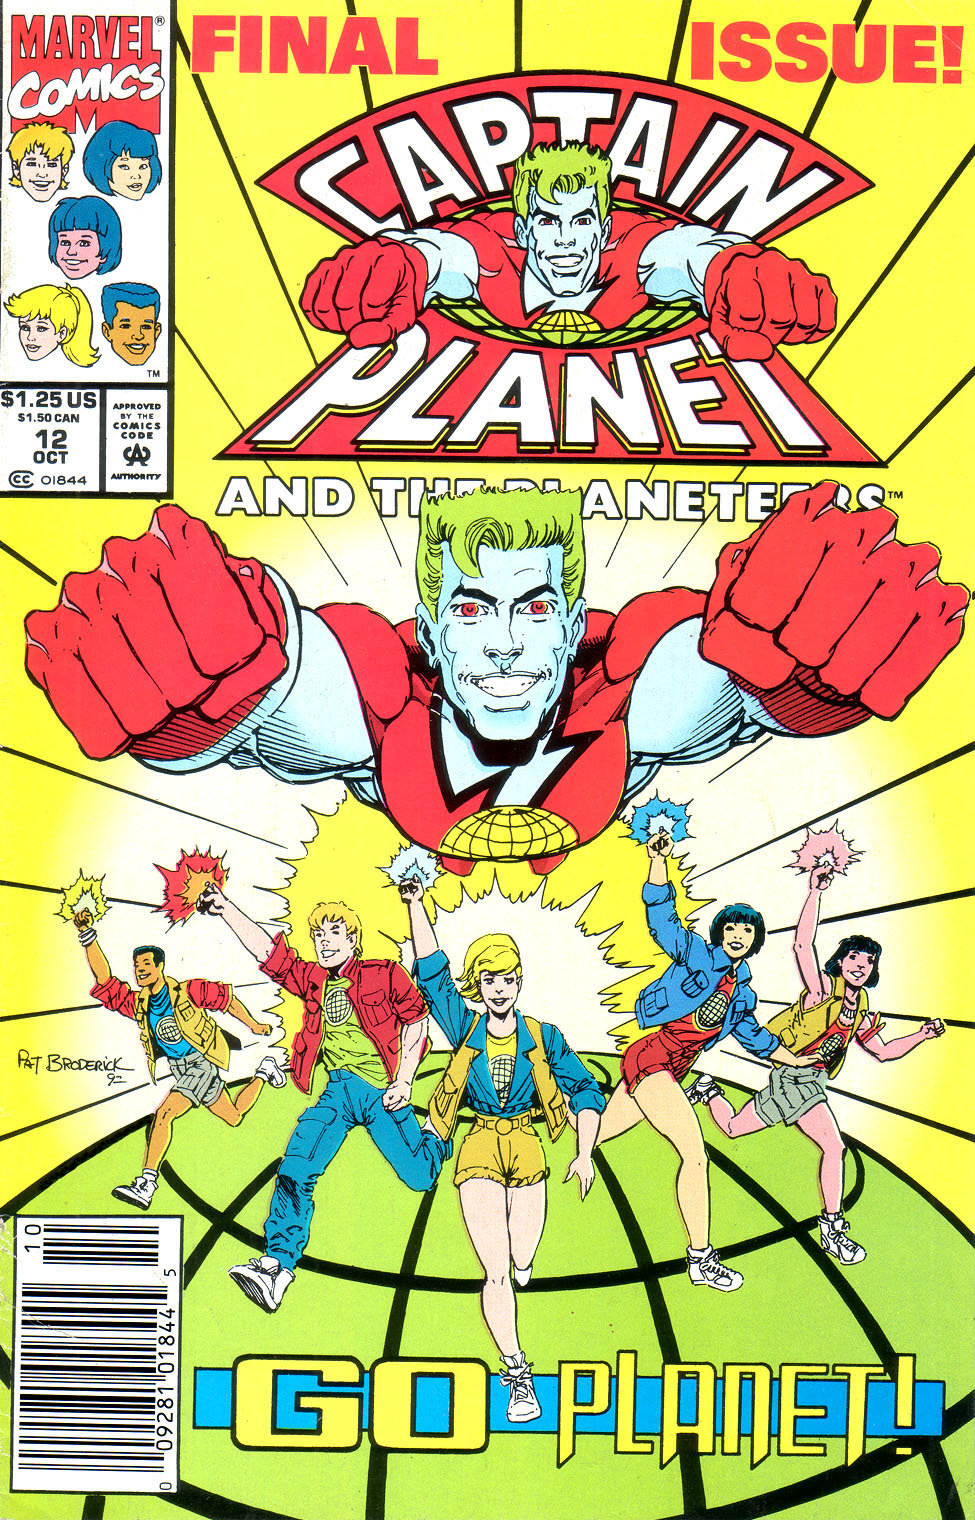 Captain Planet and the Planeteers 12 Page 1